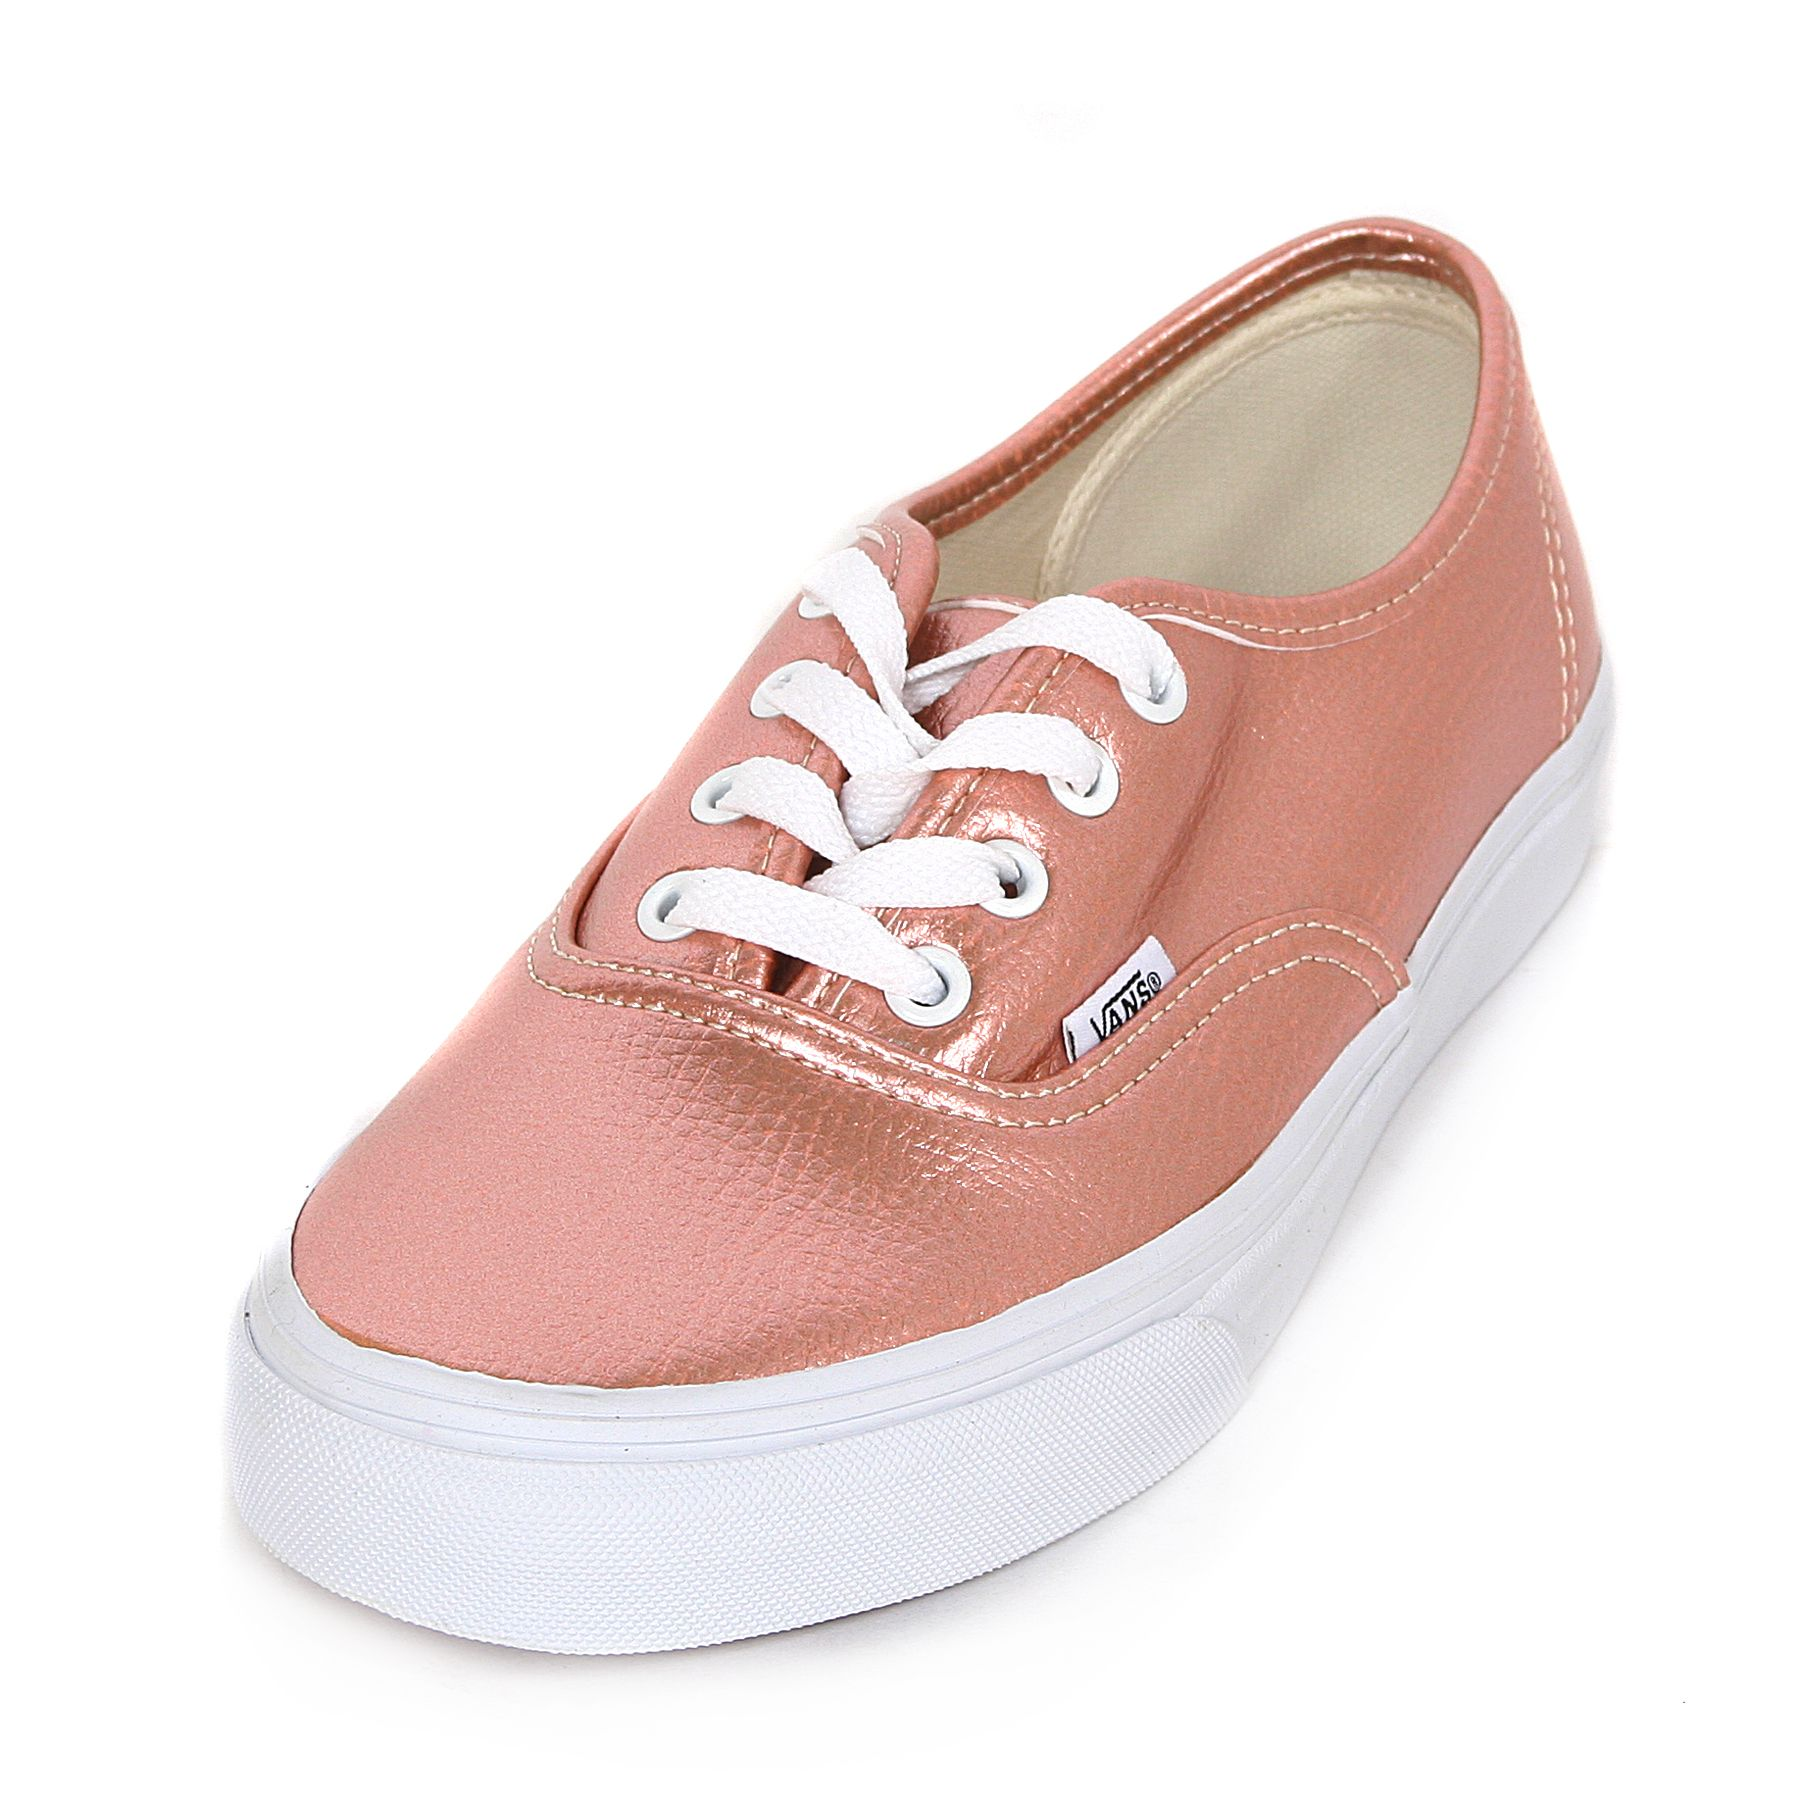 216e07a497158a Shine in these Vans Authentic Glitter Leather Rose Gold trainers ...